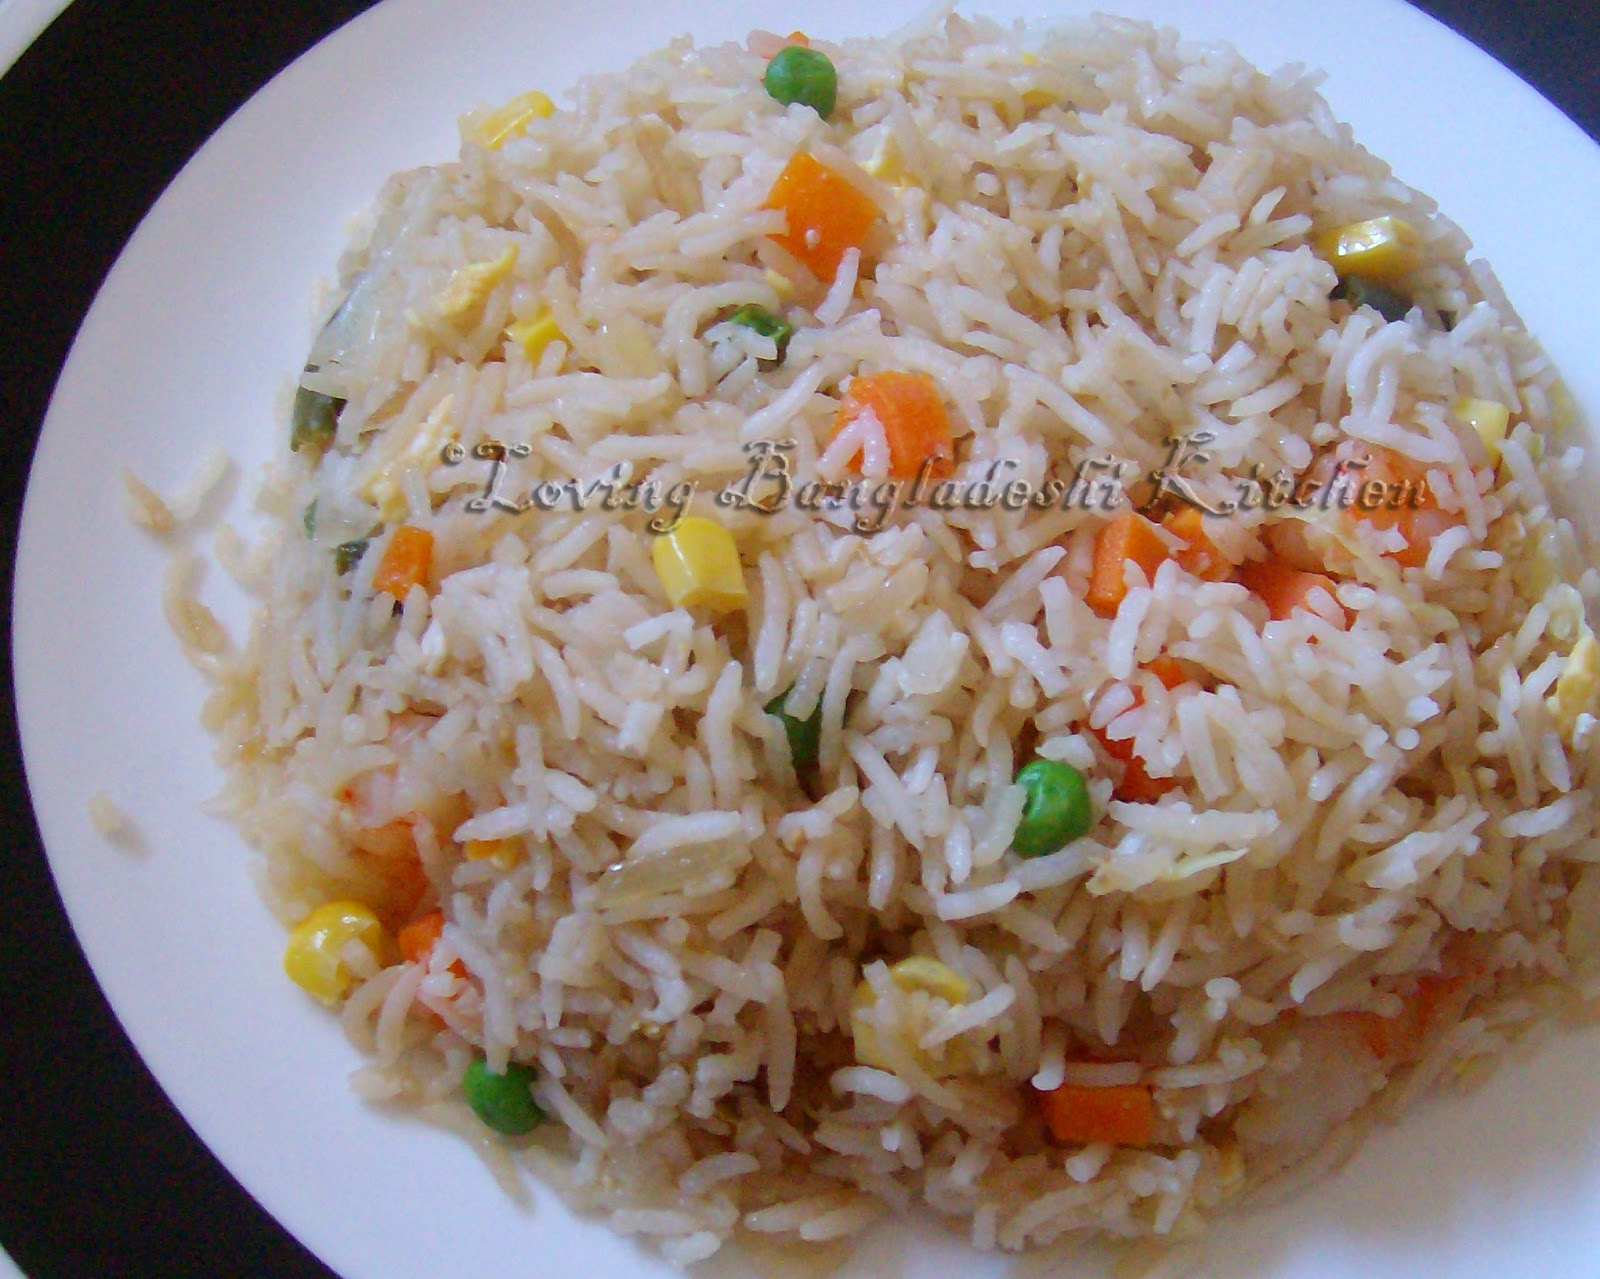 Loving bangladeshi kitchen may 2011 fried rice forumfinder Image collections